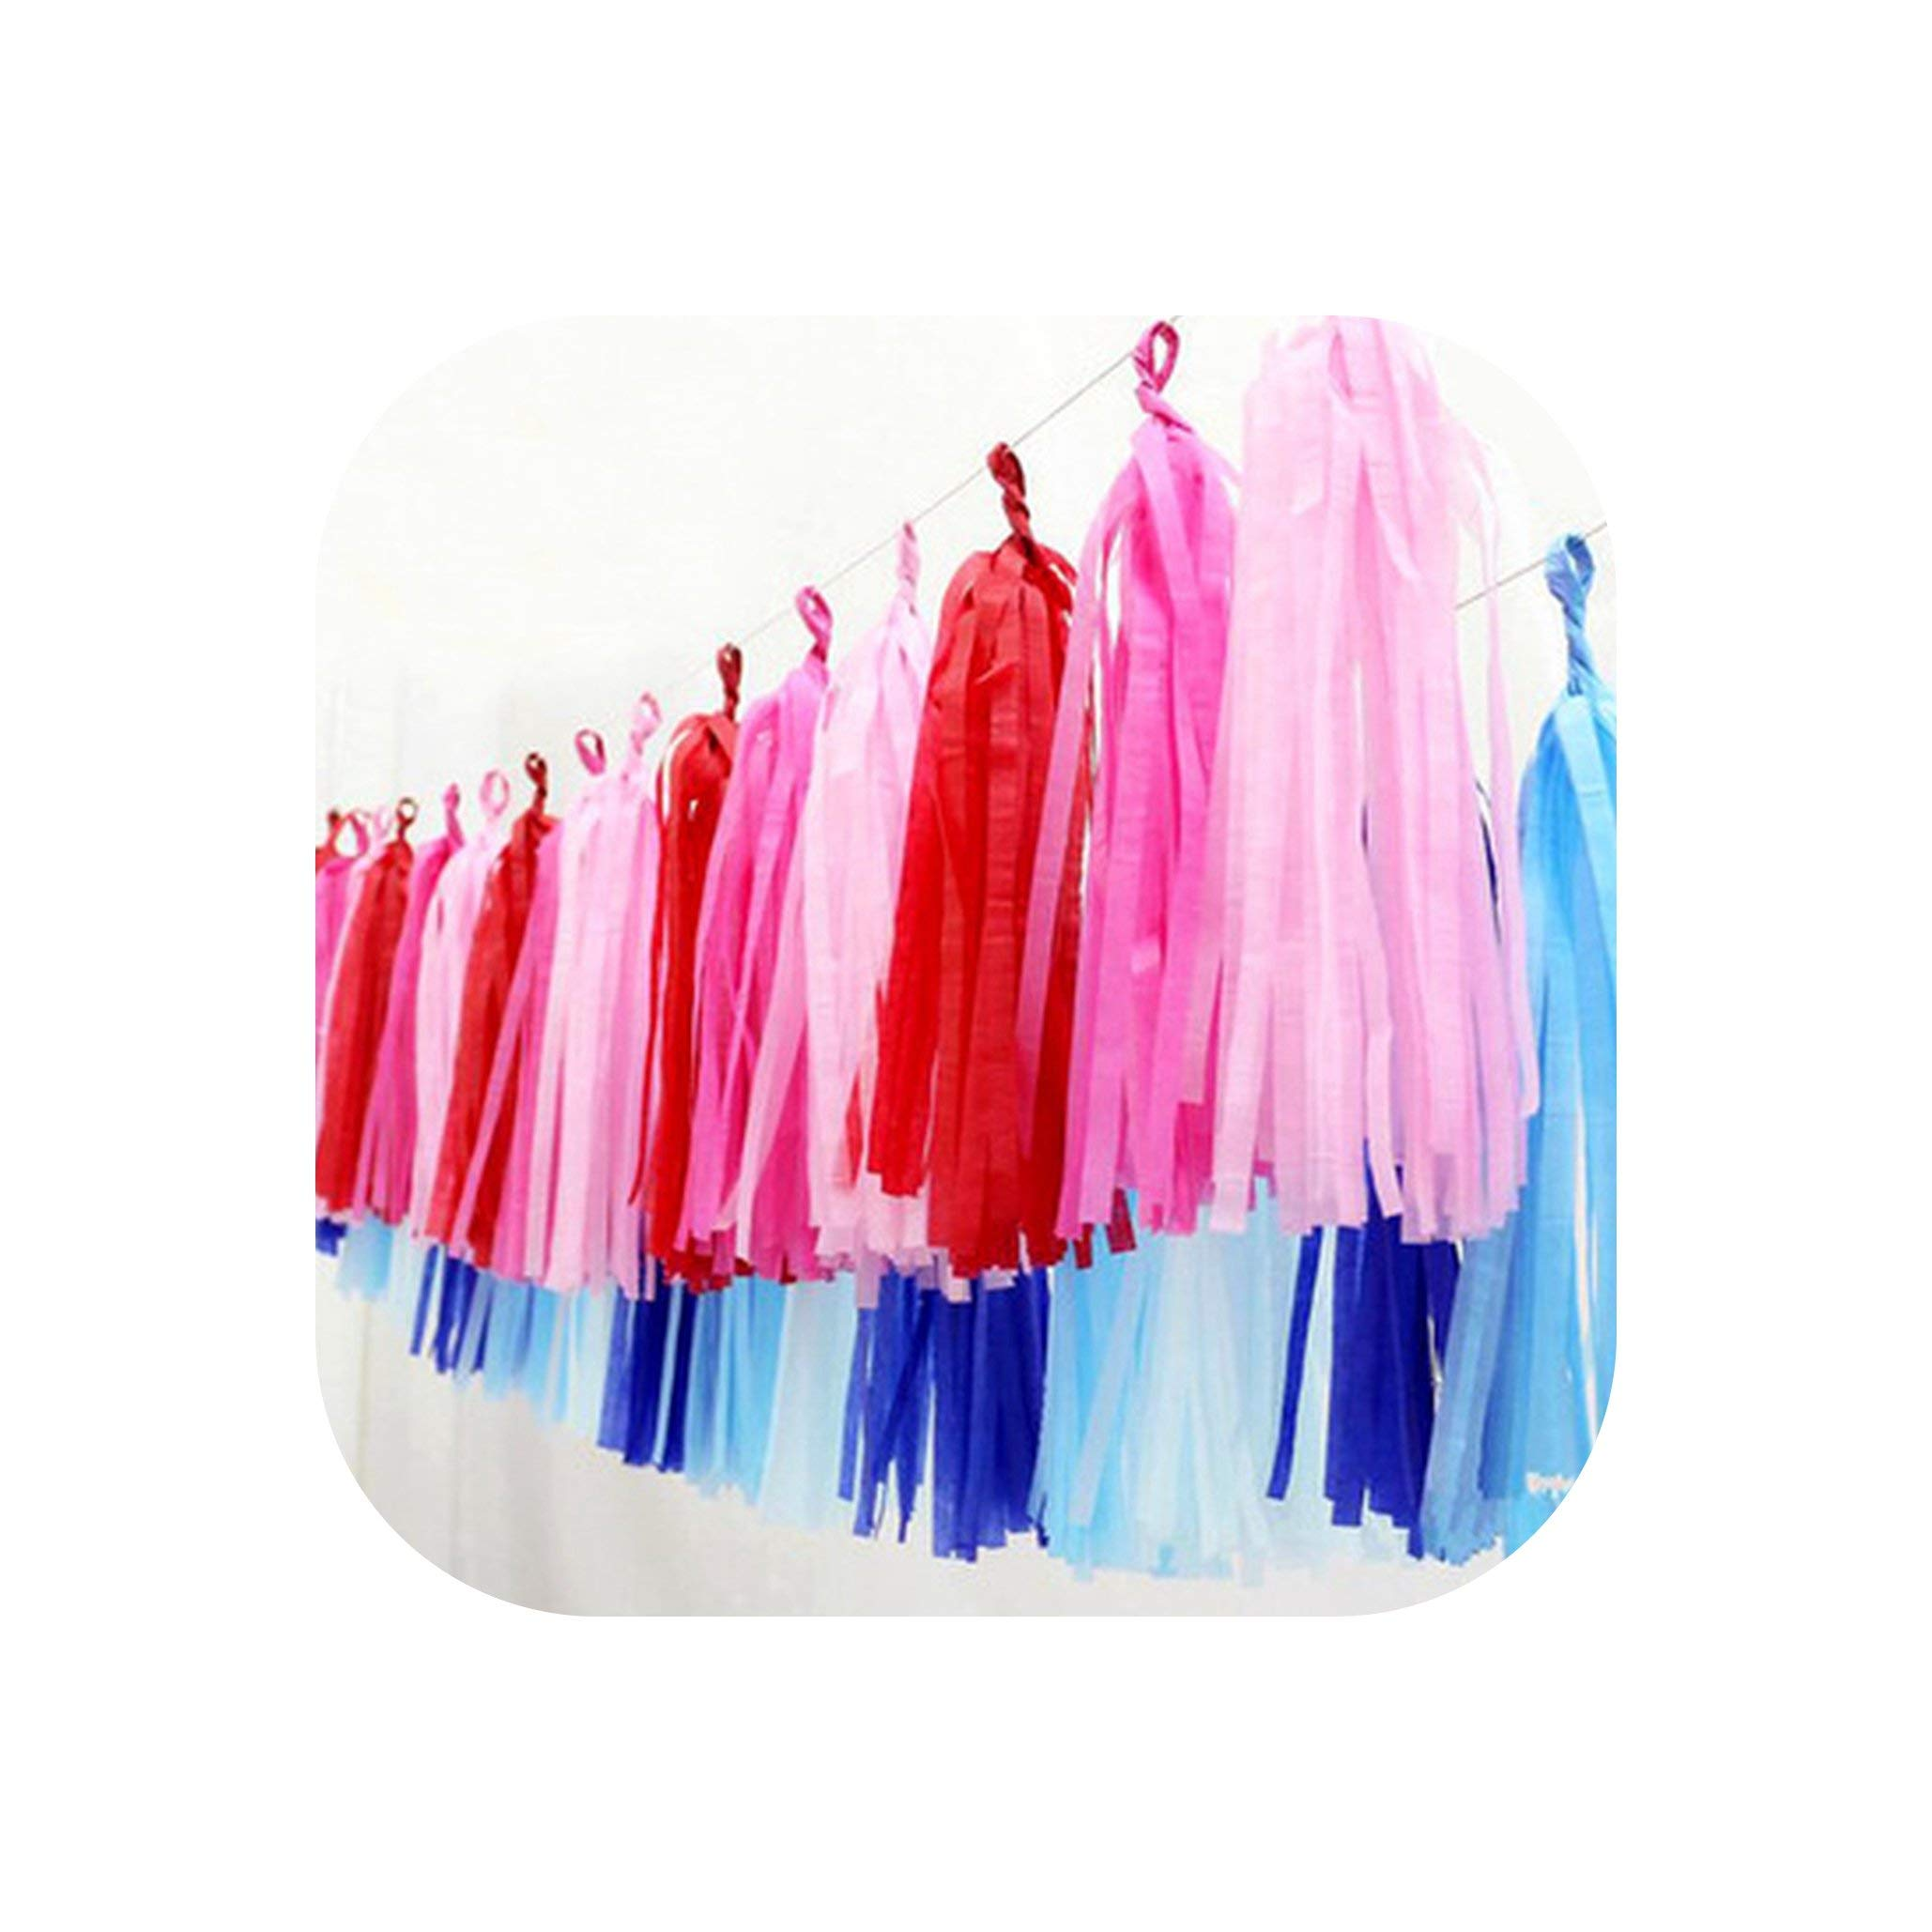 loveinfinite 1000pcs/lot Tissue Paper Tassel DIY Party Garland for Baby Shower Decoration Bridal Shower Wedding Bunting